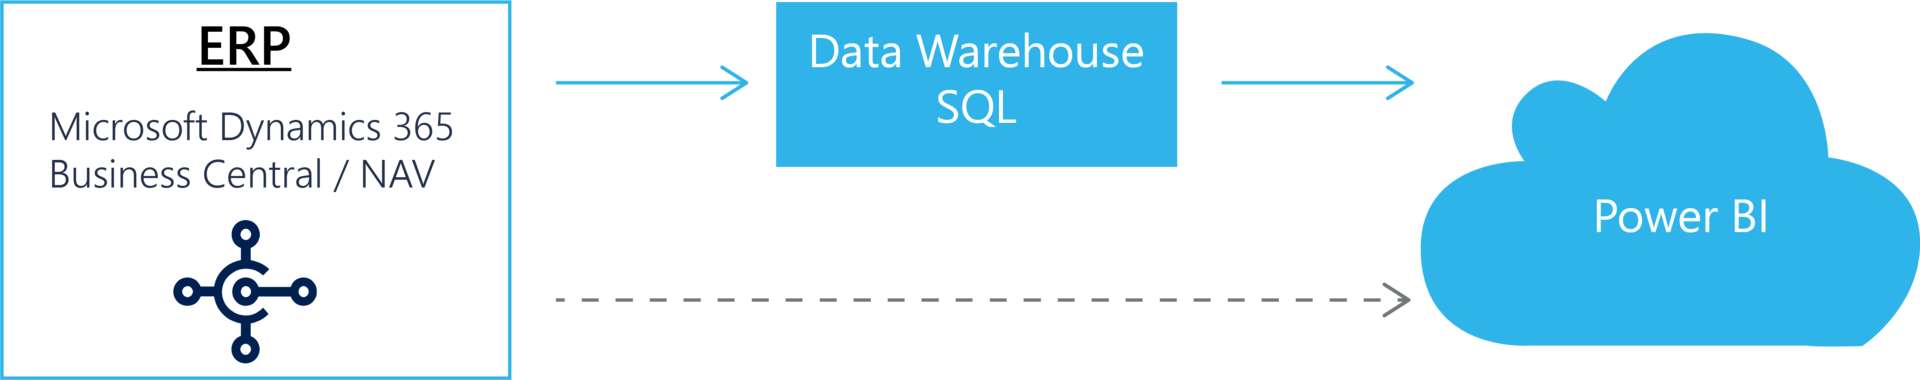 Power Bi Funktionsweise Data Warehouse